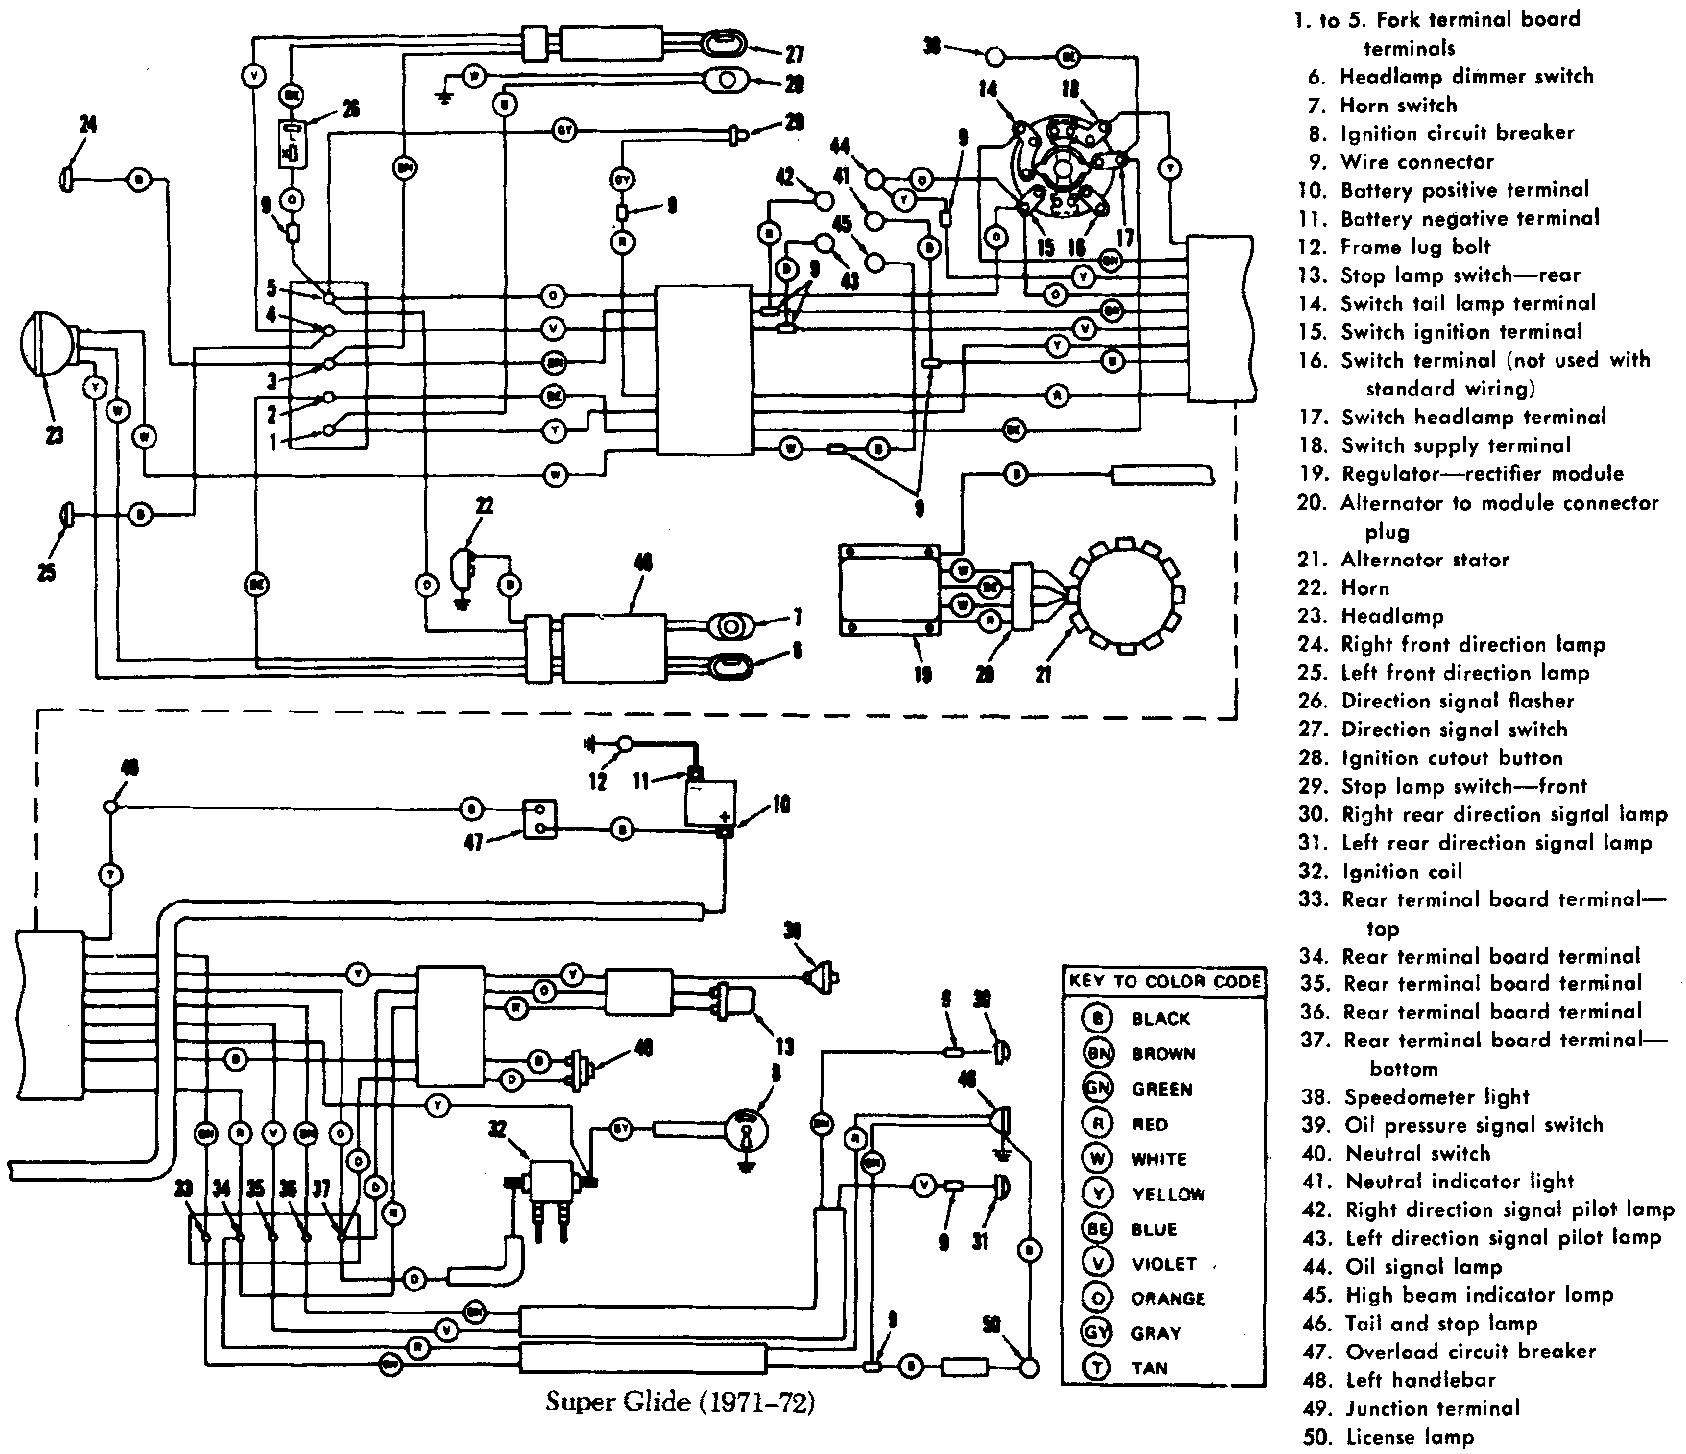 1998 harley softail wiring diagram